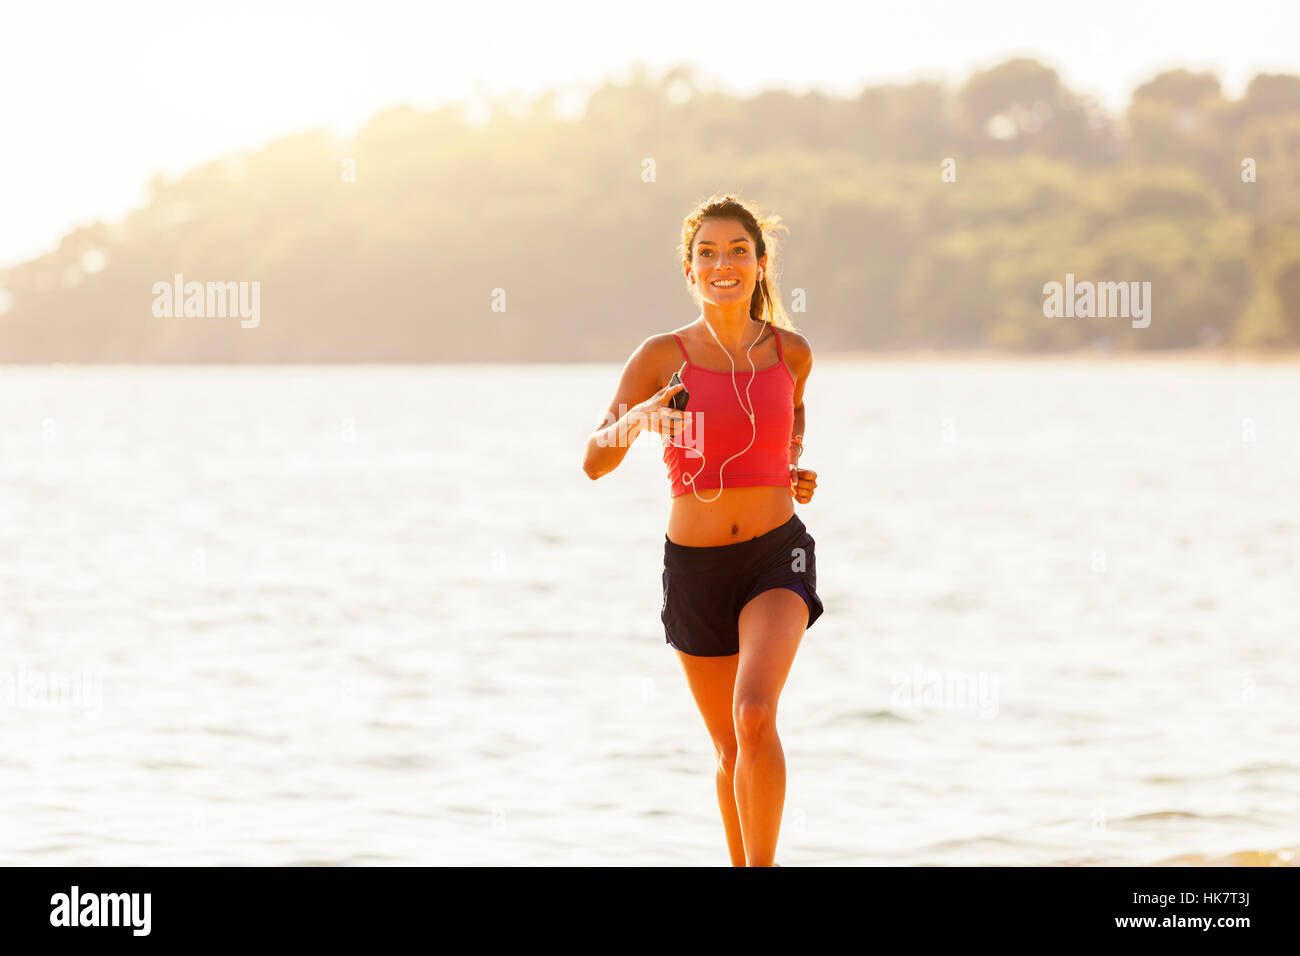 young healthy lifestyle woman running on beach - Stock Image